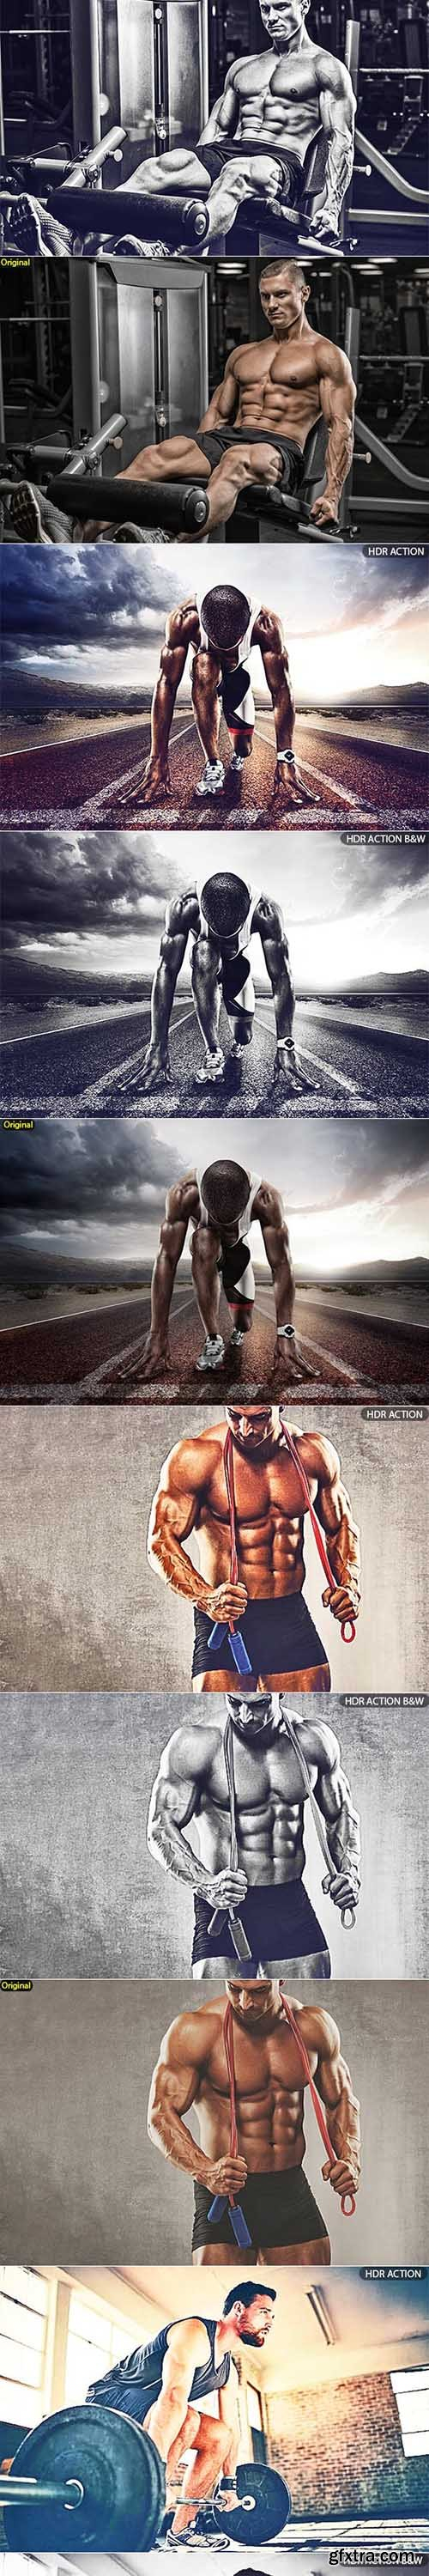 GraphicRiver - Pro HDR Photoshop Action 2 23136048